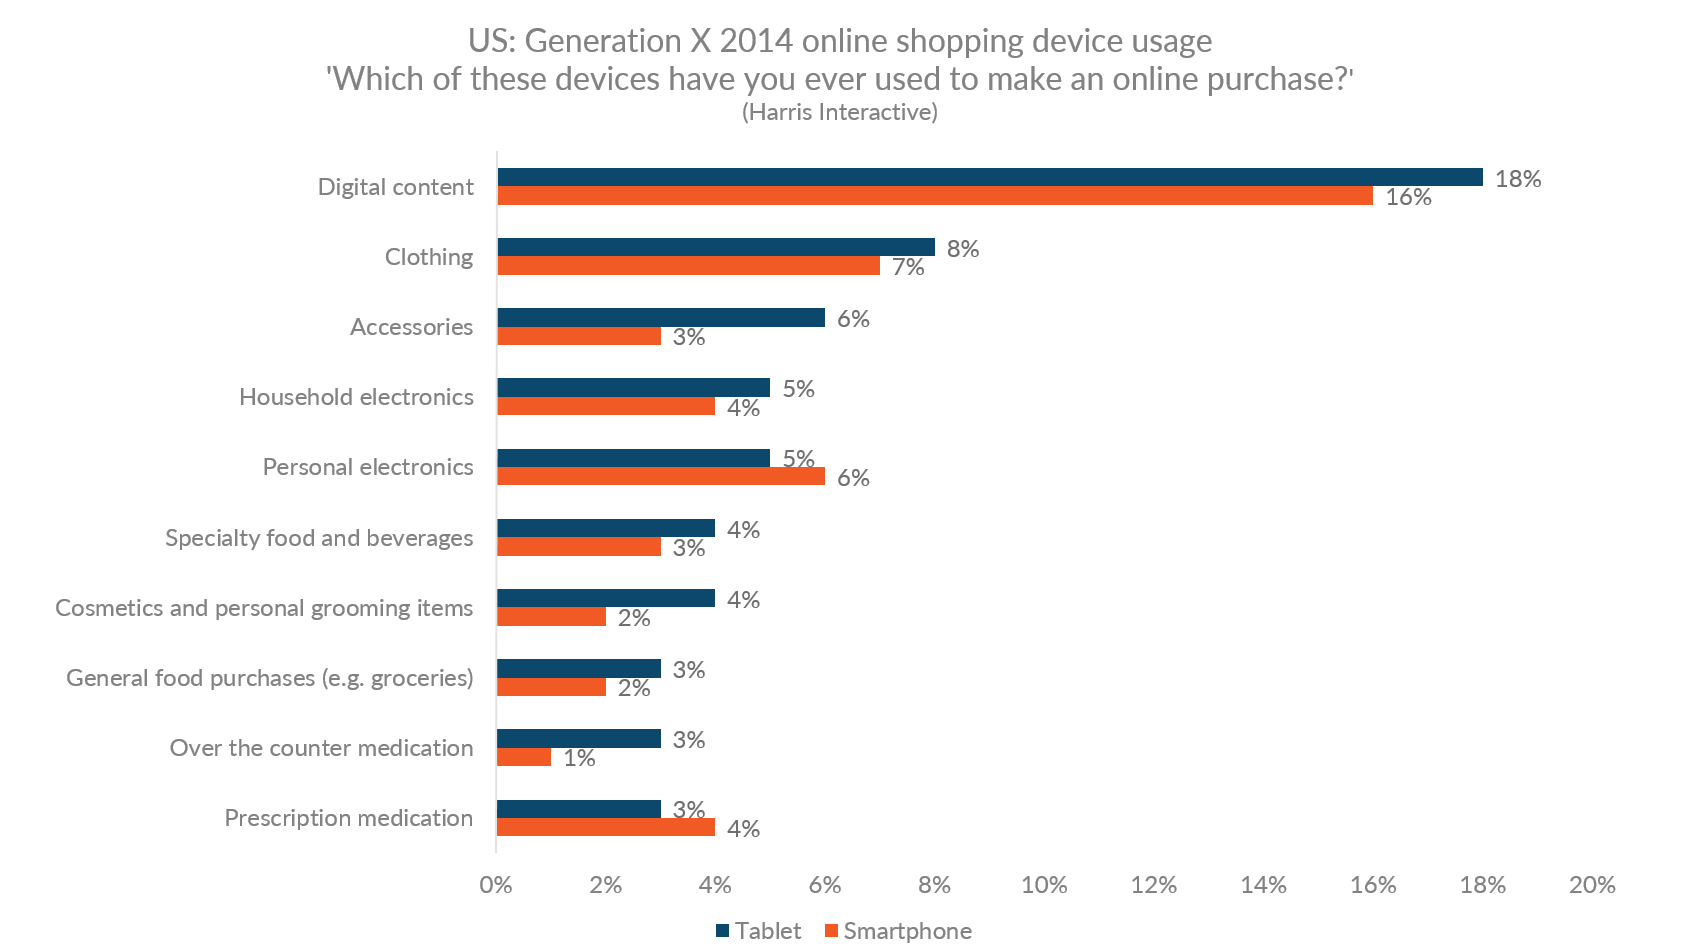 Graph showing the rate for online purchases by device in product categories in the US for Generation X